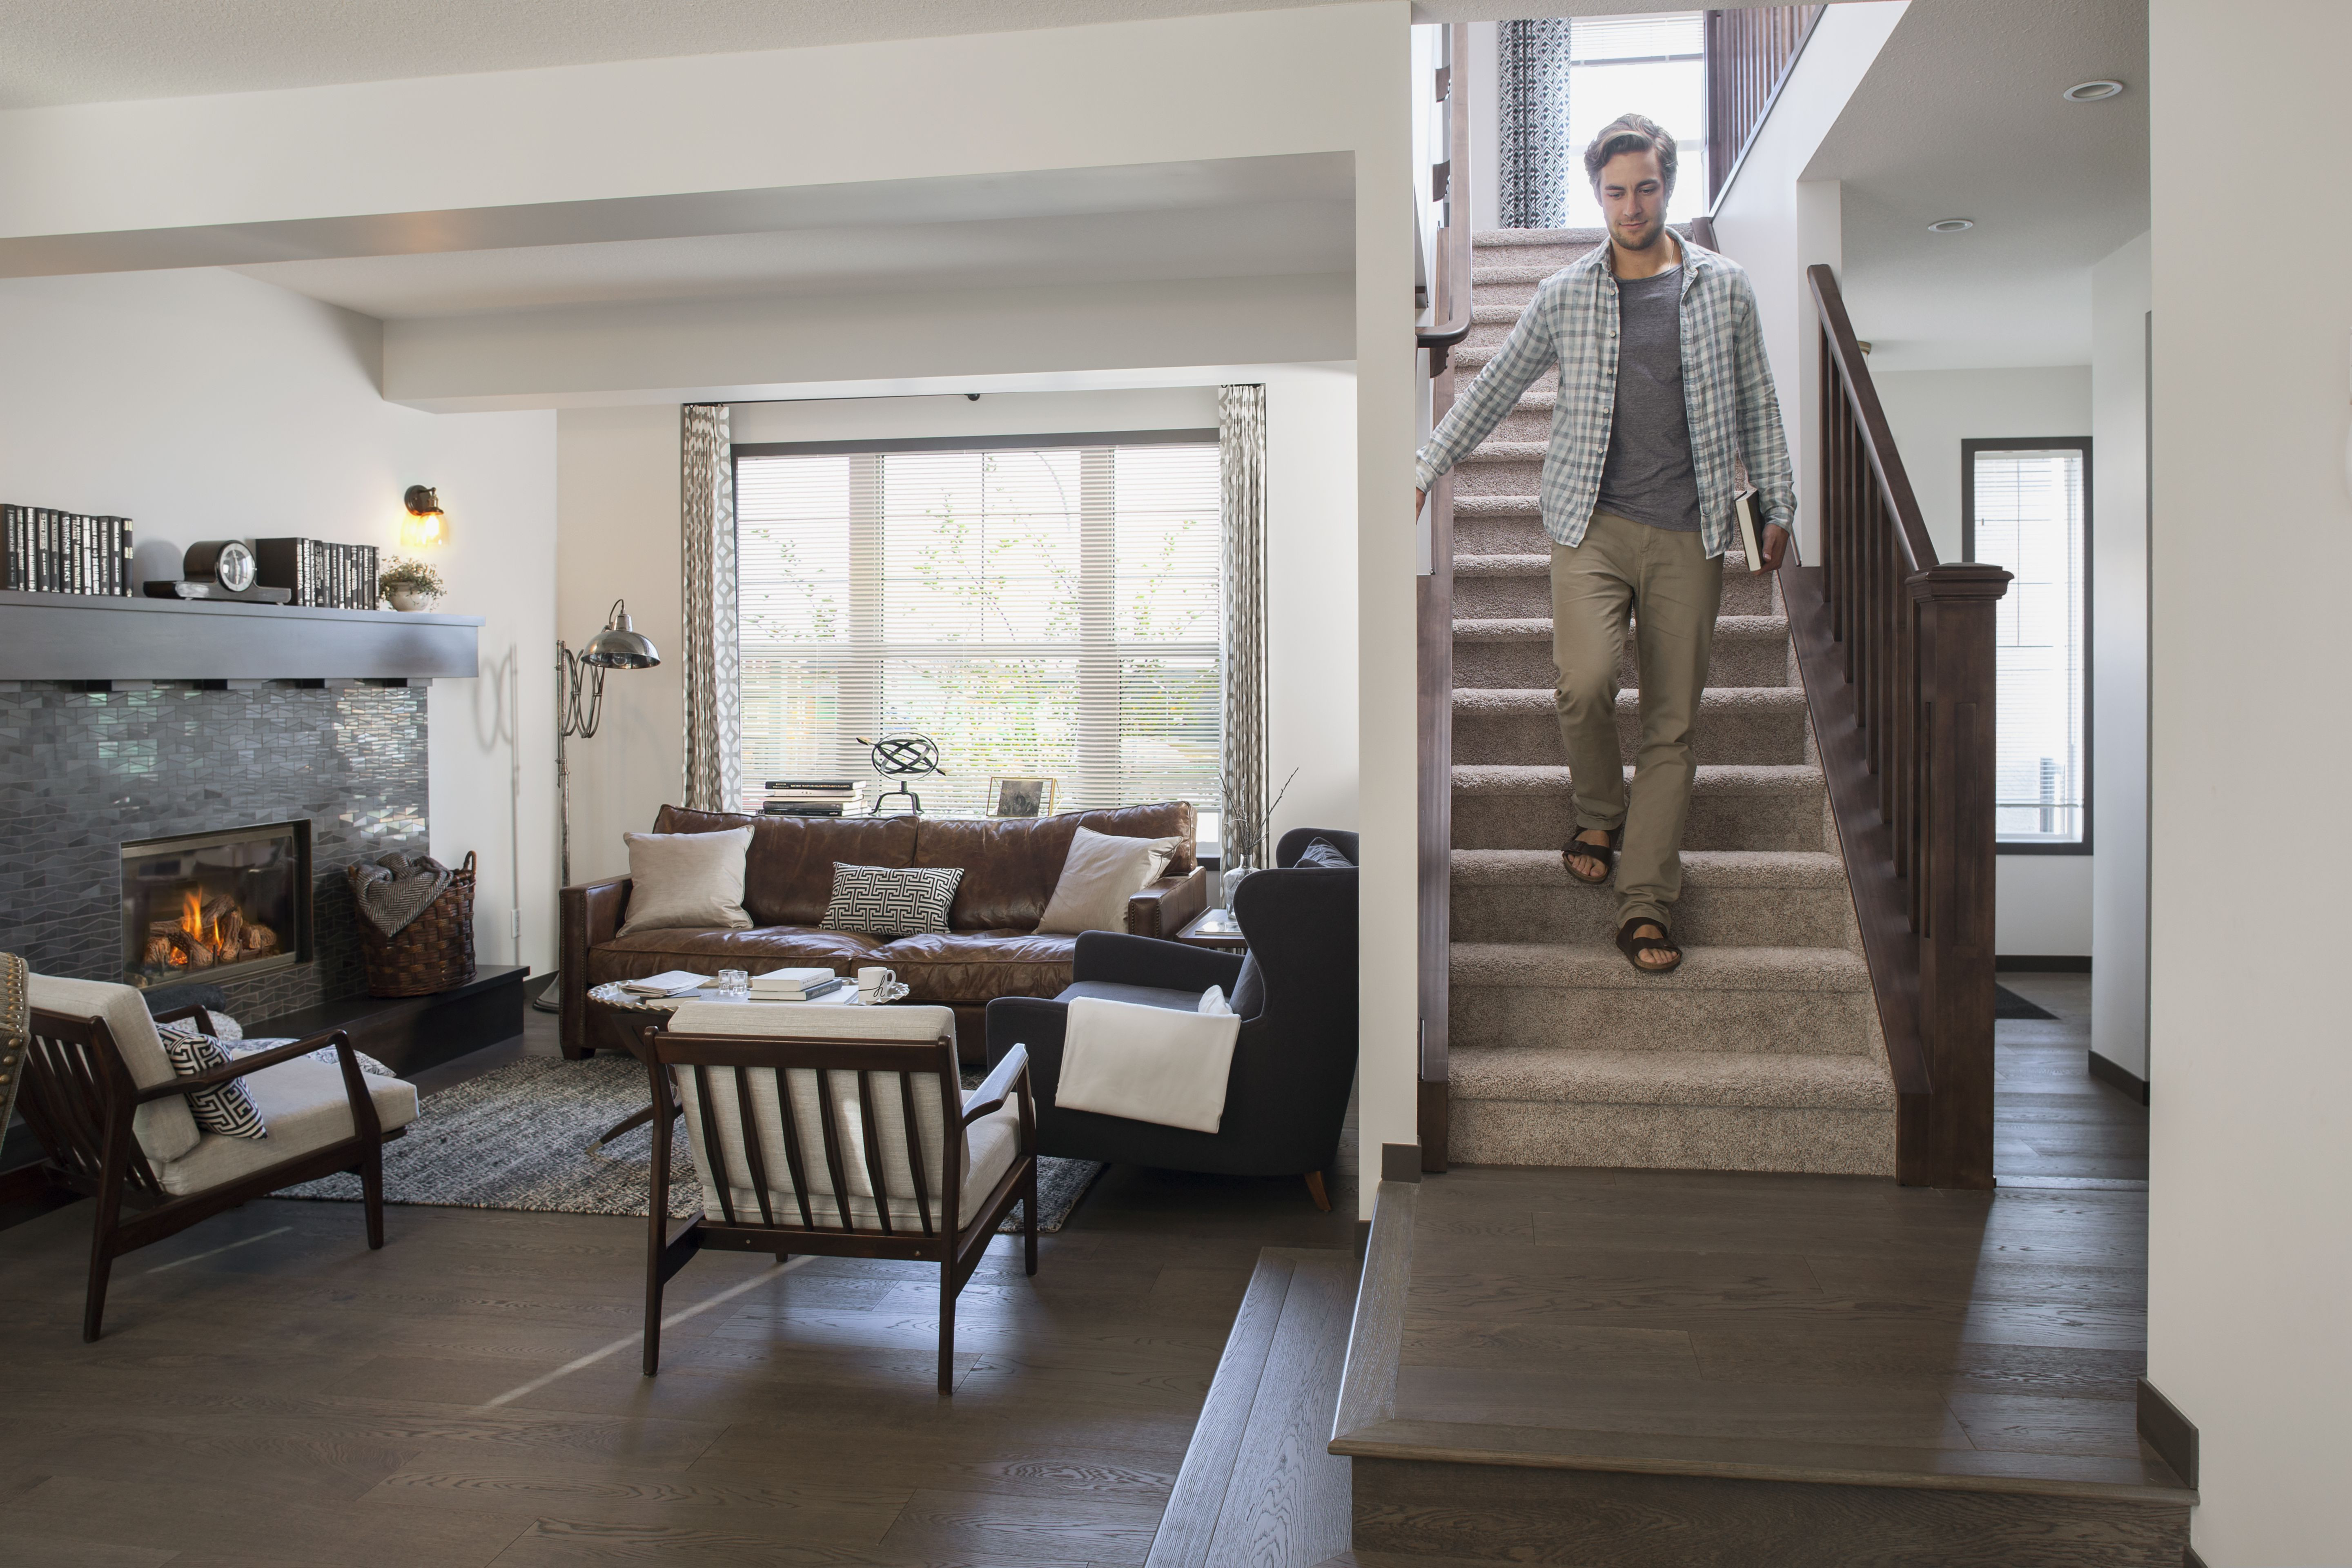 how to install hardwood floors on stairs landing of add metal balusters railings or posts to your stairs regarding man descending staircase in house 530054777 58d07c513df78c3c4fc8f060